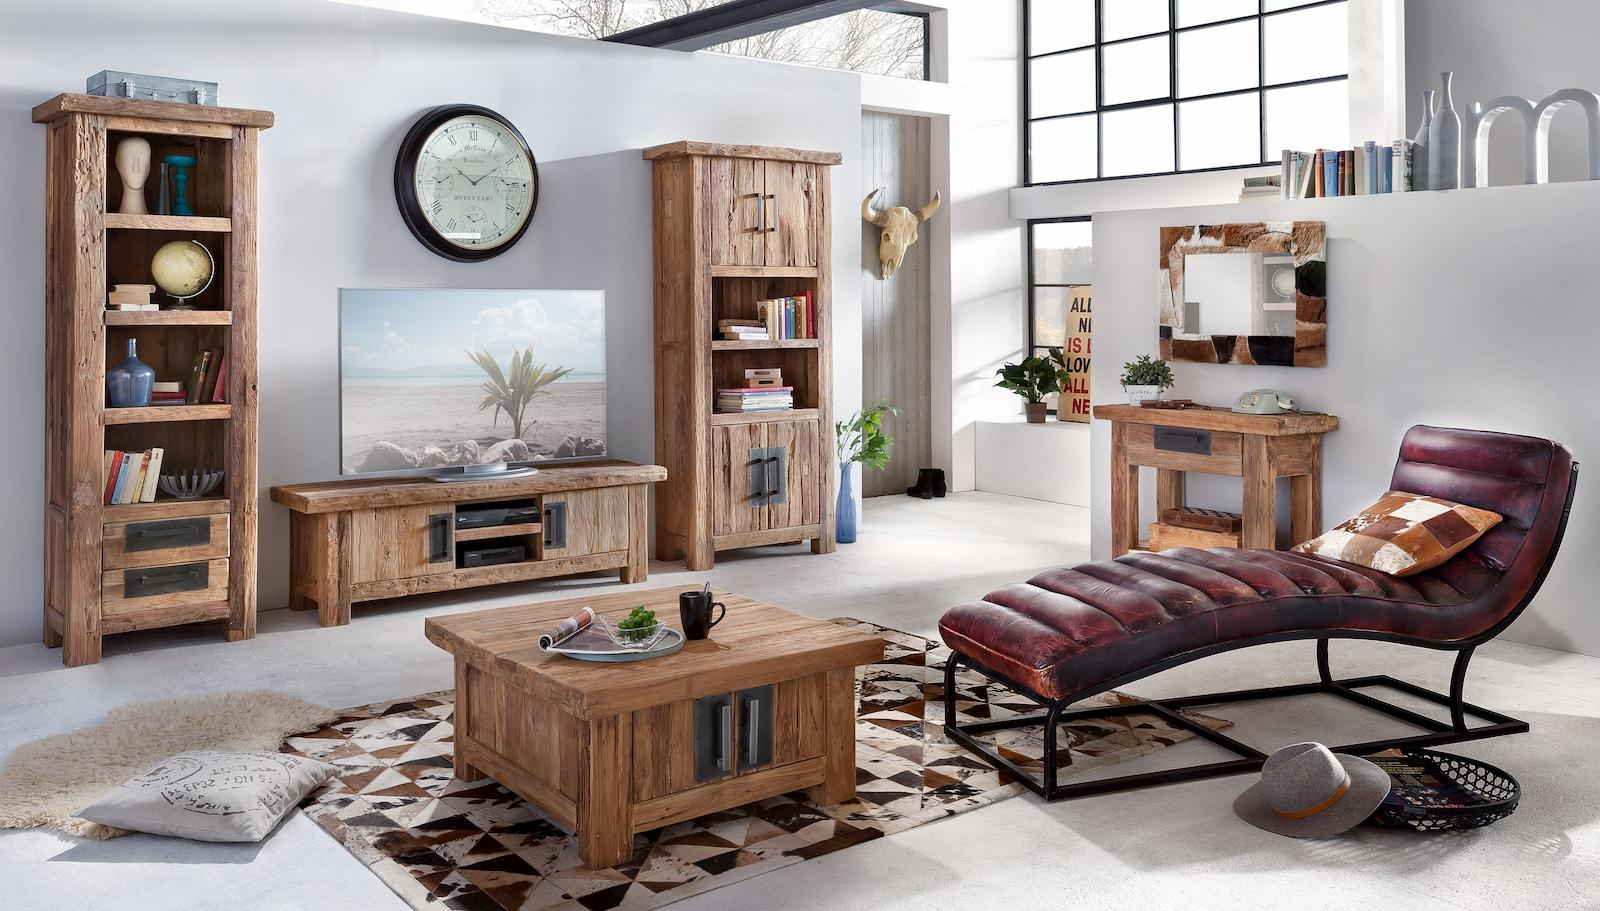 telefontisch coral 17486 natur sch ner wohnen tische. Black Bedroom Furniture Sets. Home Design Ideas